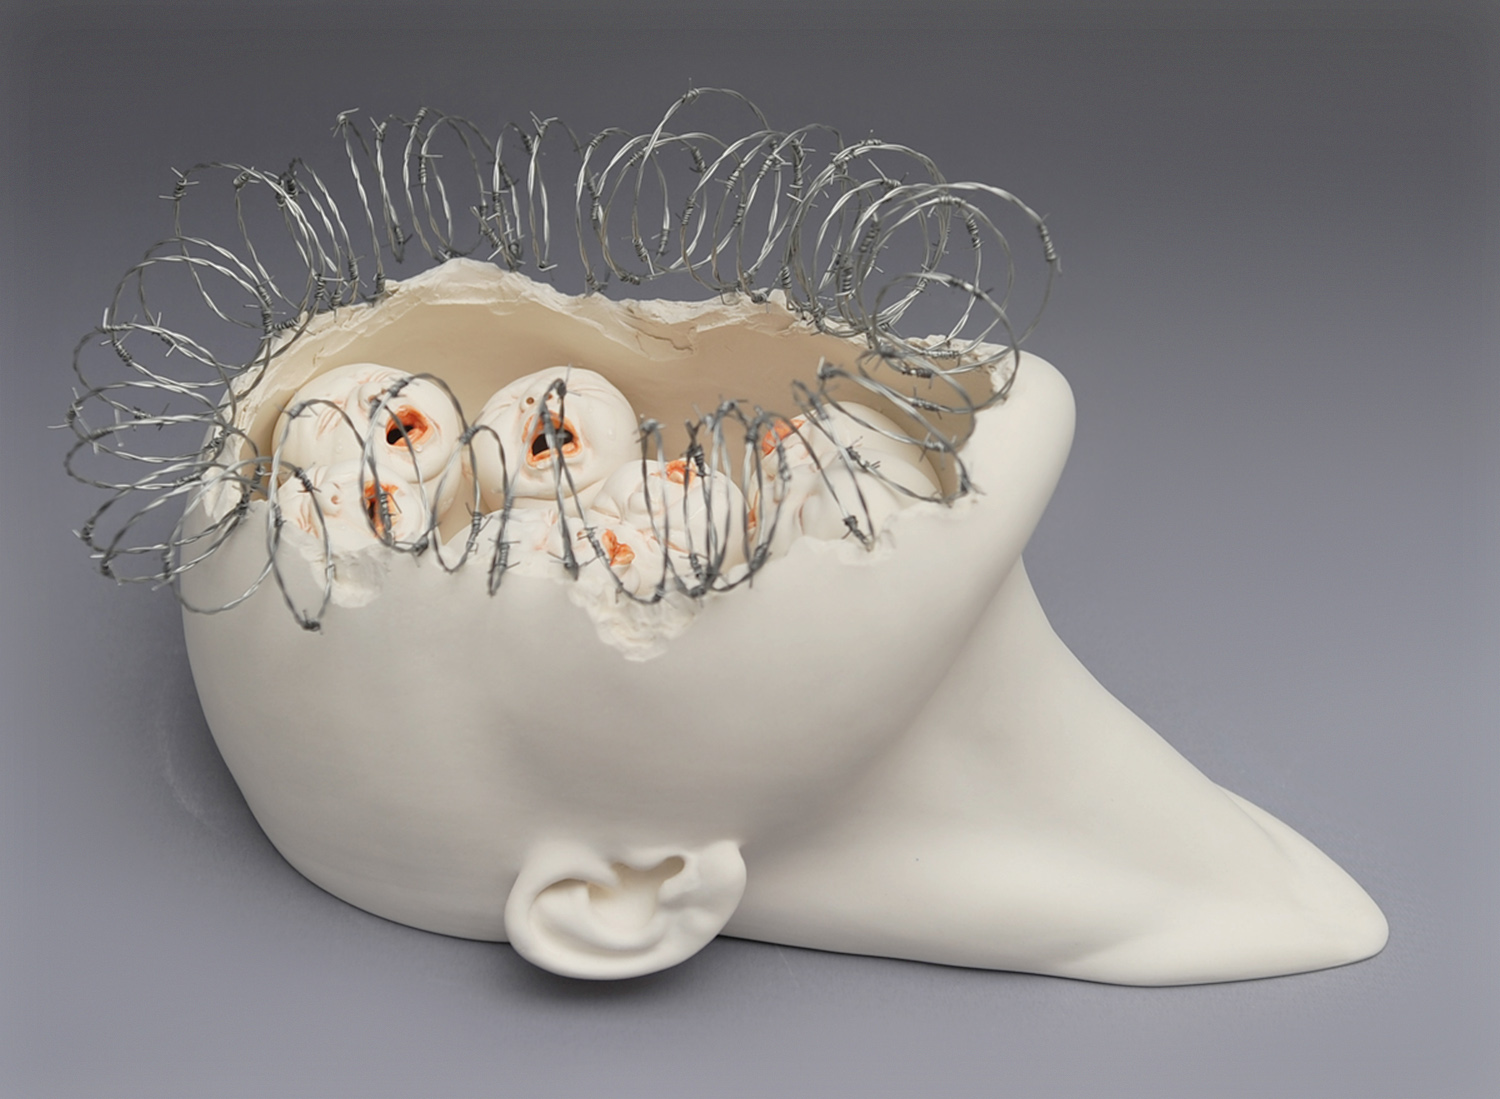 face busted open with babies inside, sculpture